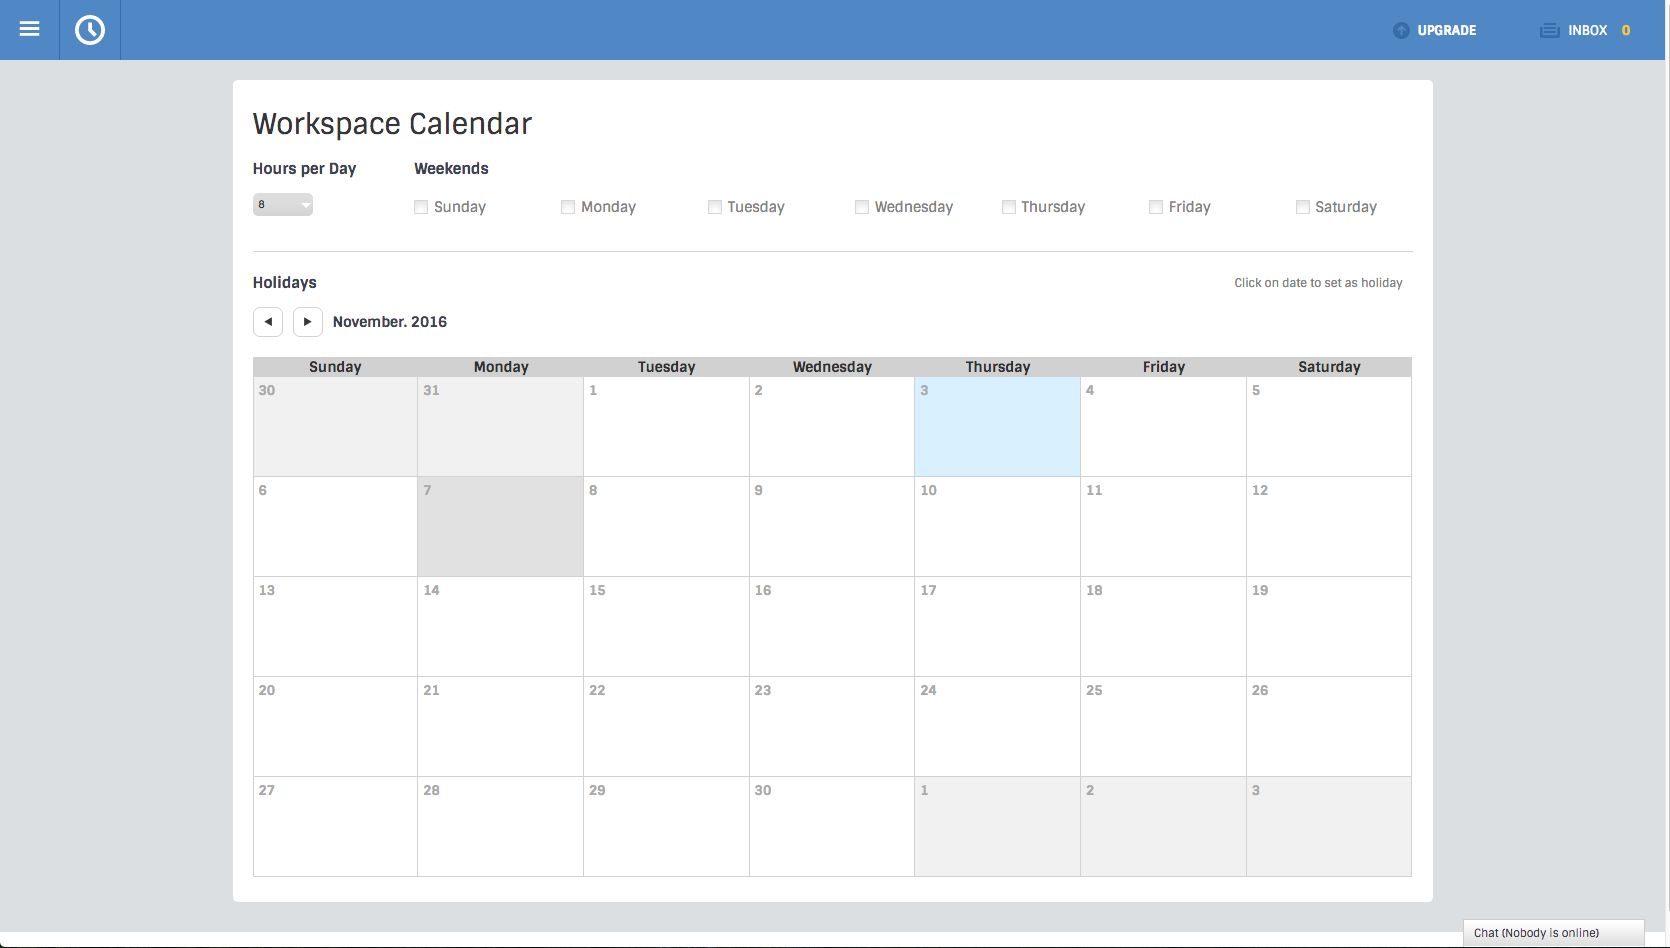 Workspace Calendar page screenshot